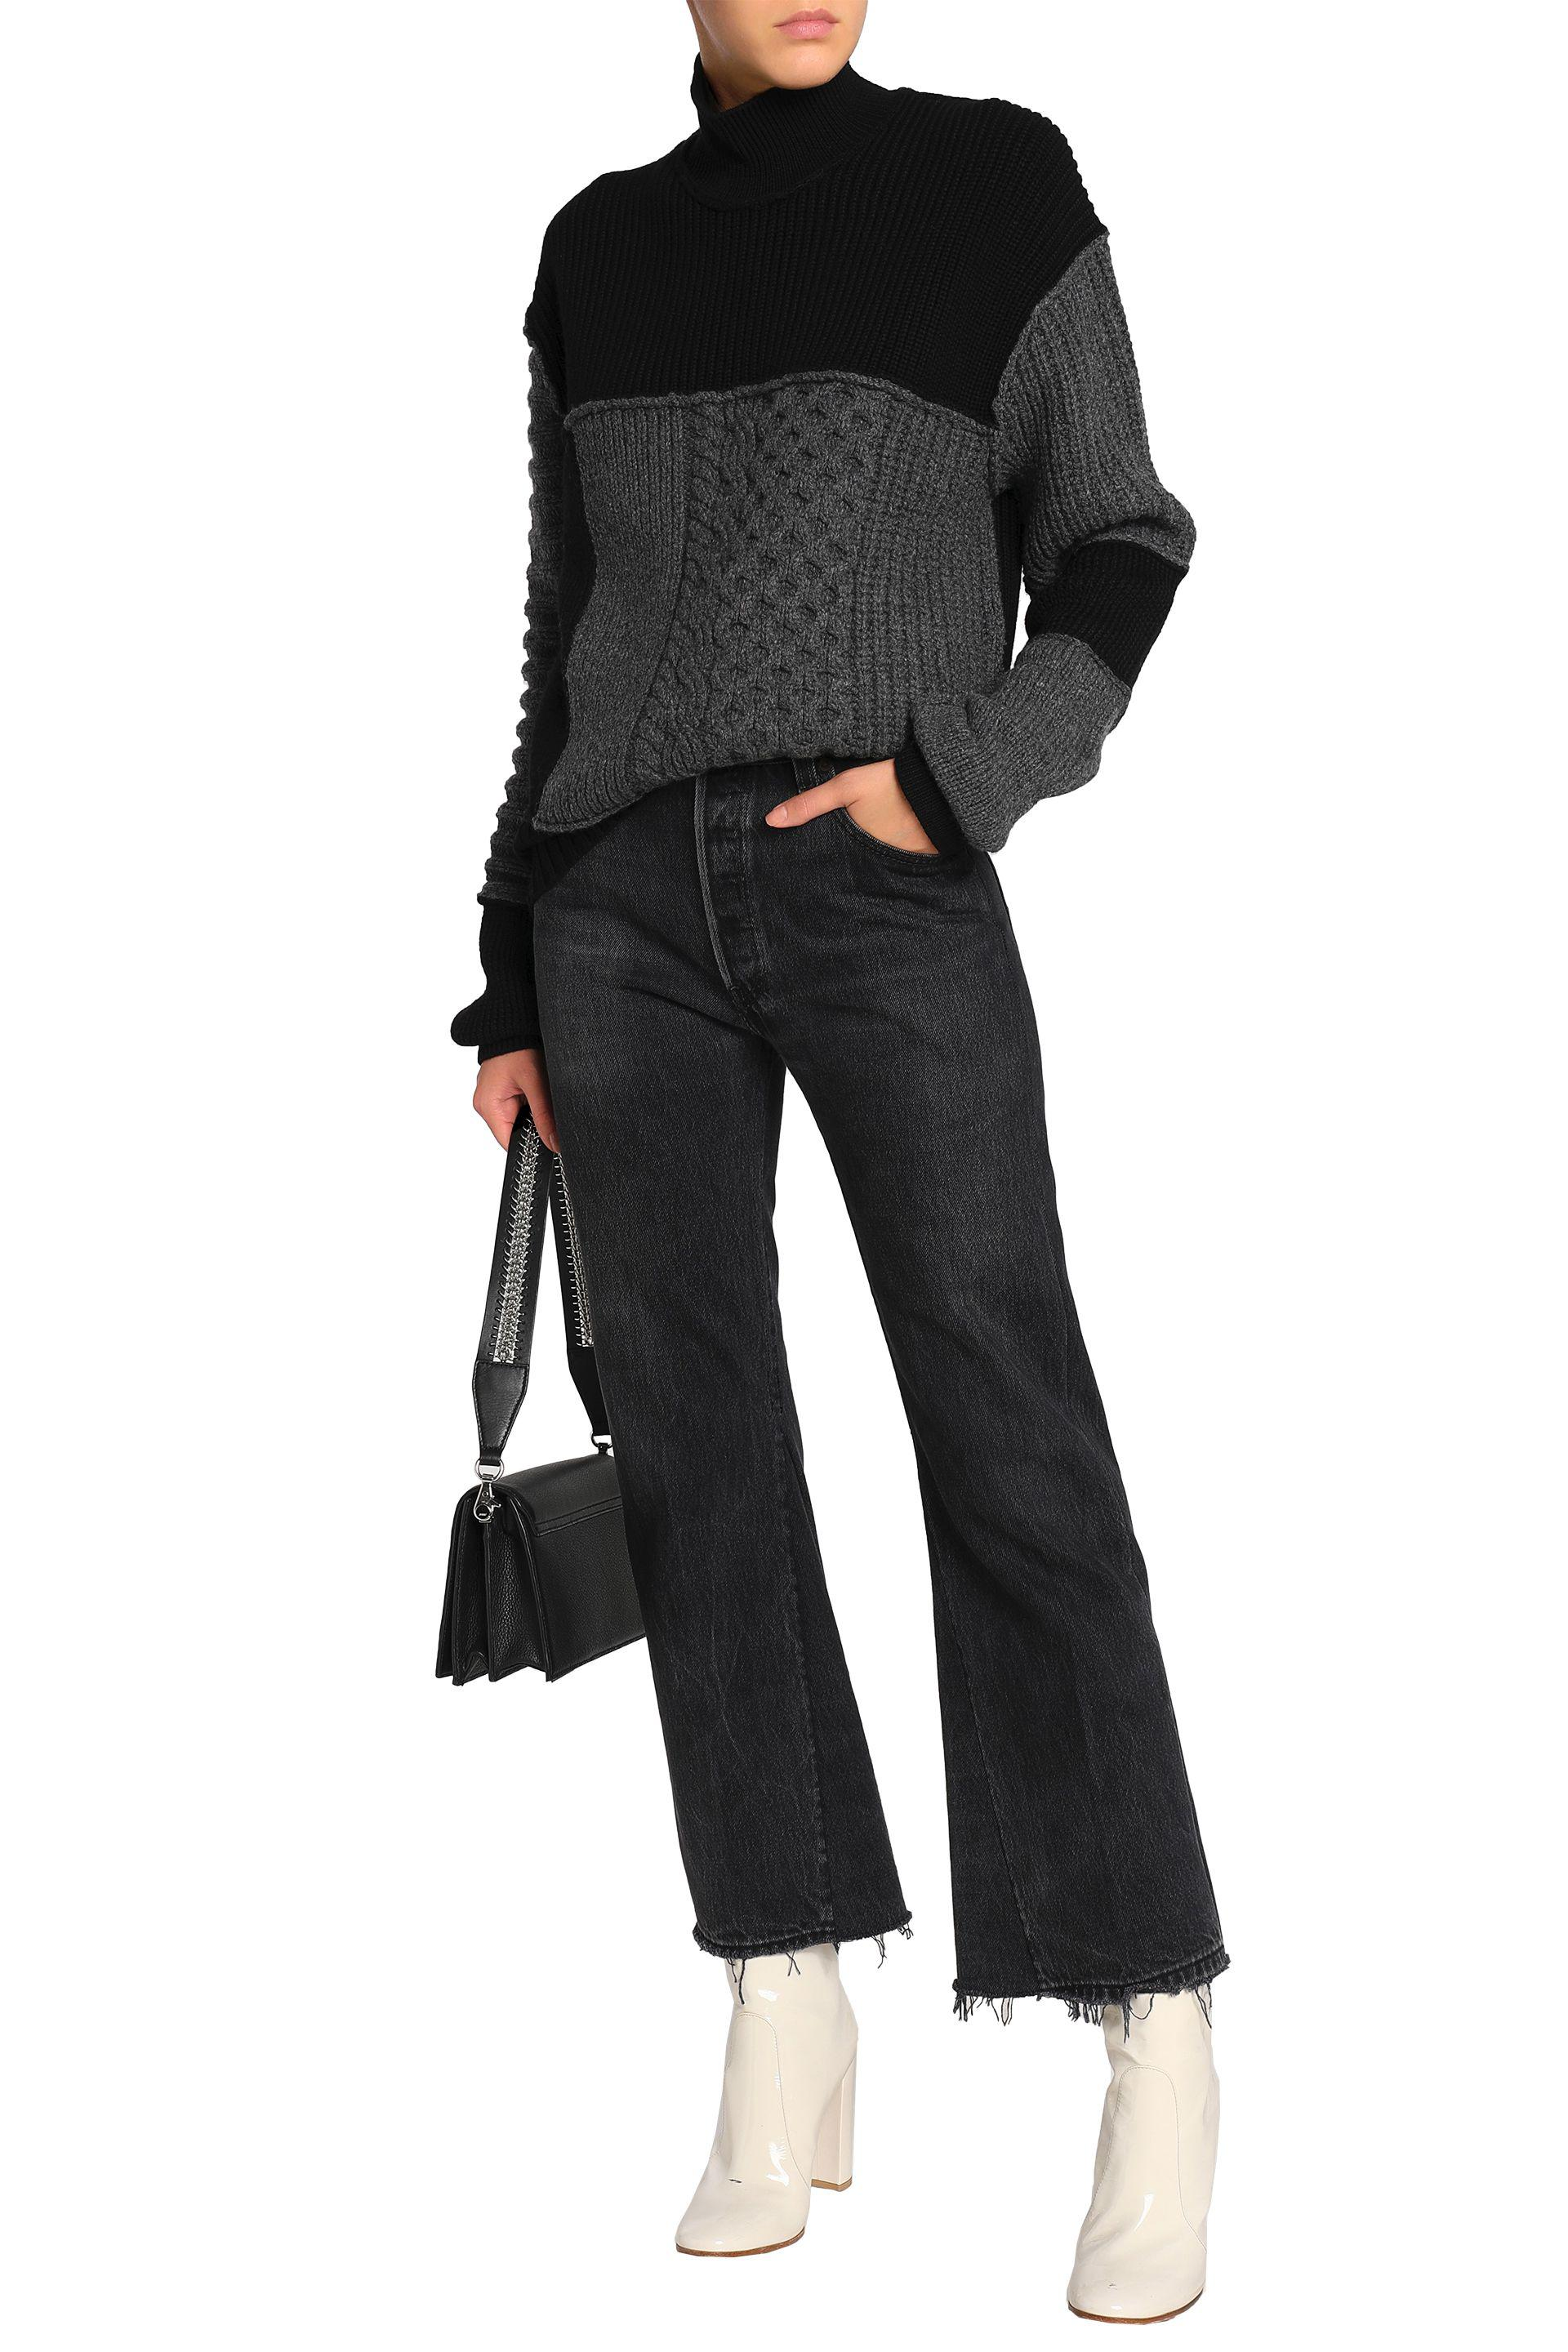 59b11a9c05f McQ Paneled Wool And Cashmere-blend Sweater in Black - Lyst